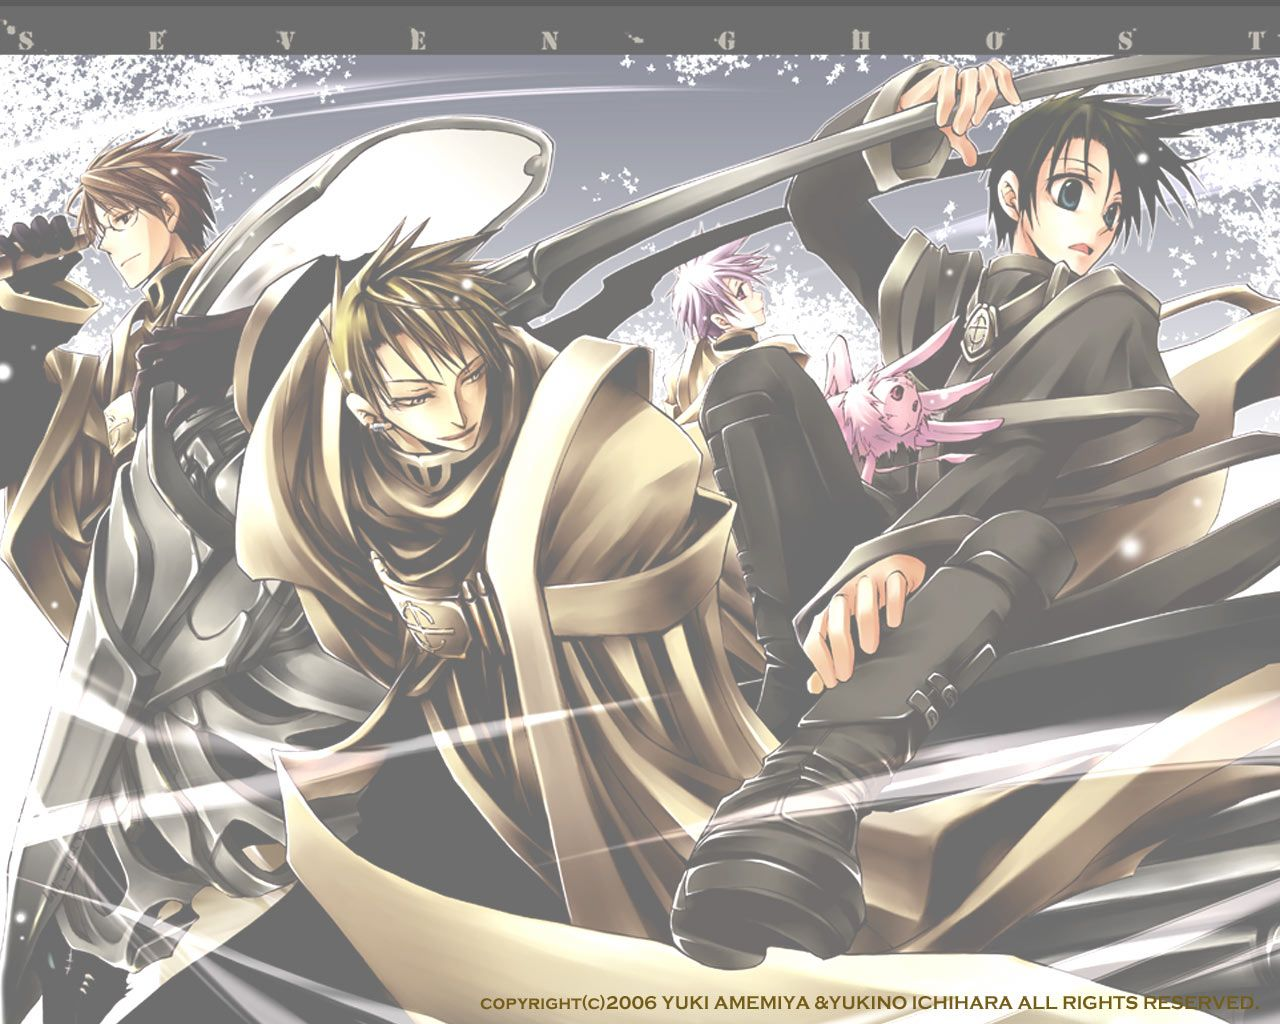 Tags Wallpaper 07 Ghost Teito Klein Labrador Castor 07 Ghost